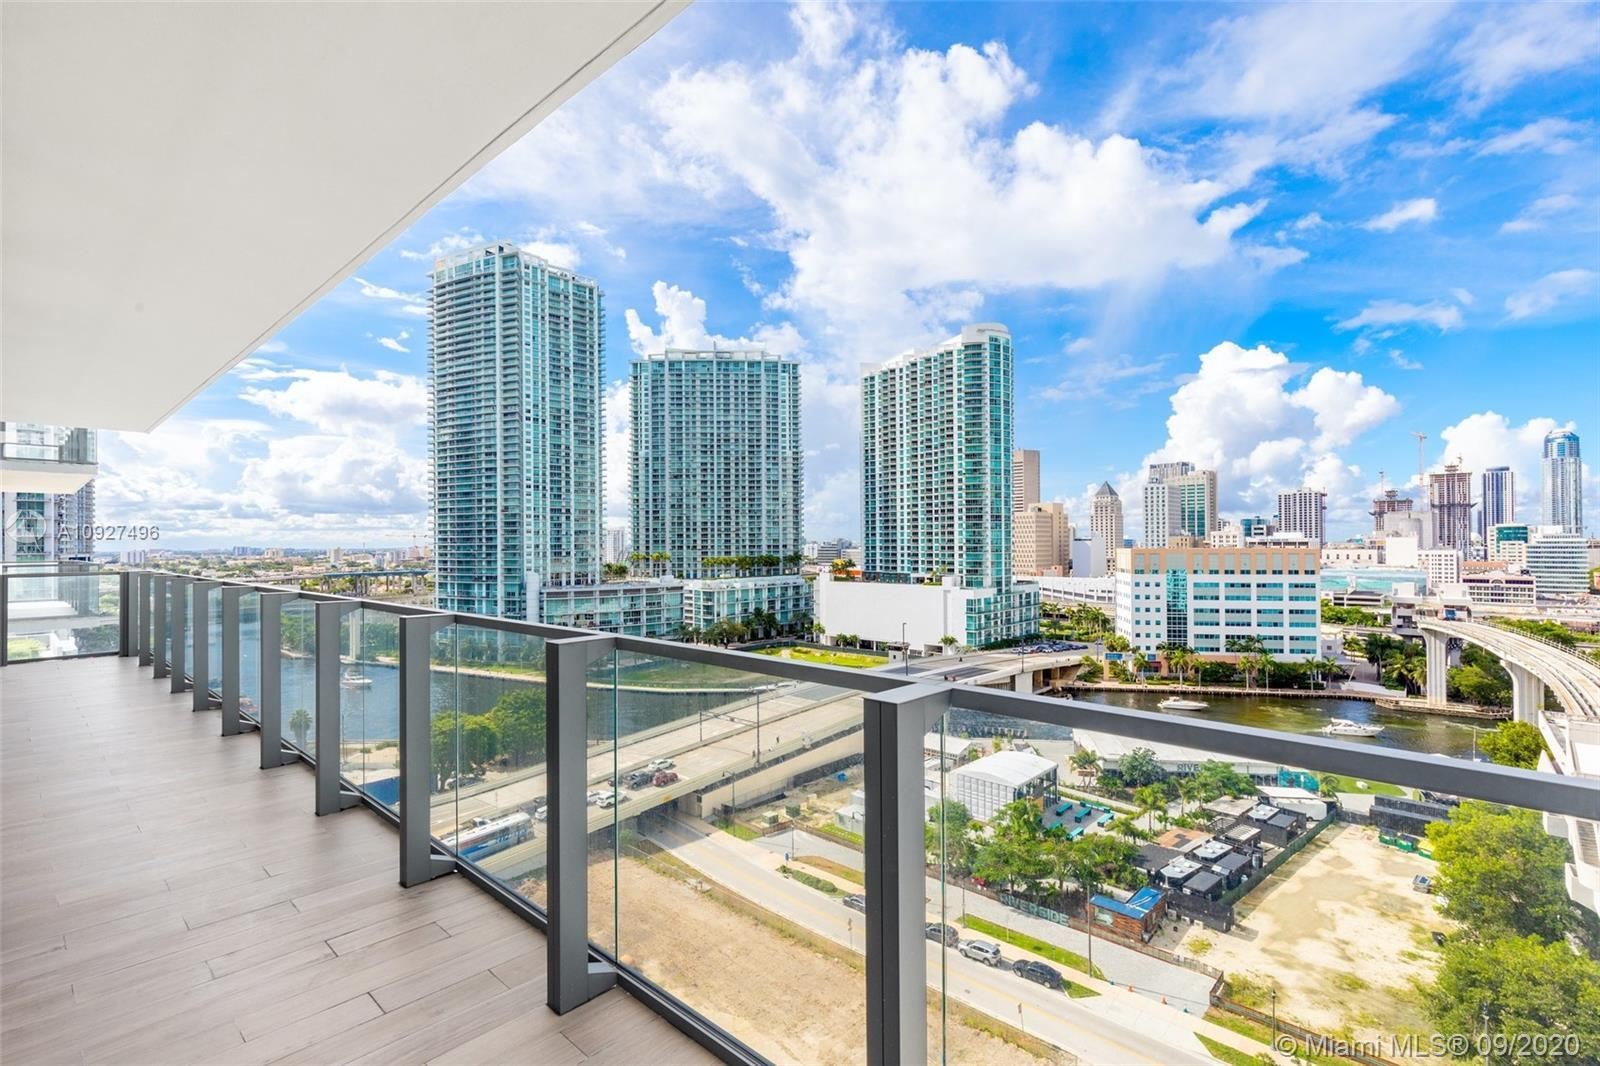 One of the Best Deals at Brickell City Centre! Spacious 2 Bed 2.5 Bath Corner Unit featuring 1,265 S